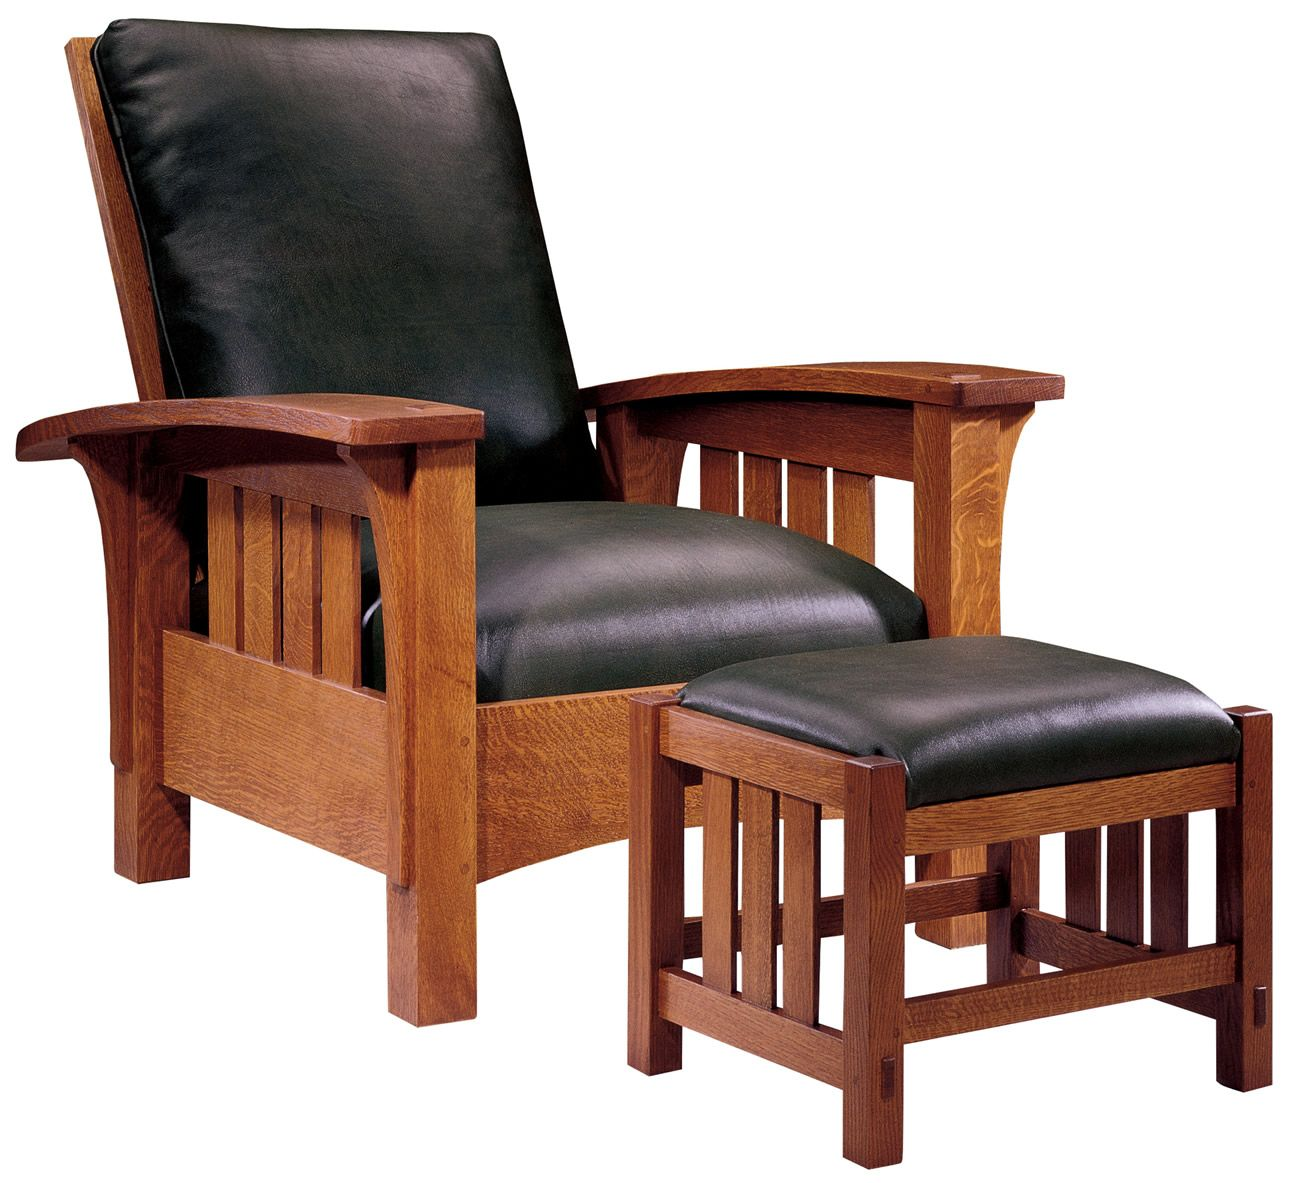 Modern wood chair with arms - Stickley Furniture Classic Bow Arm Morris Chair Ottoman